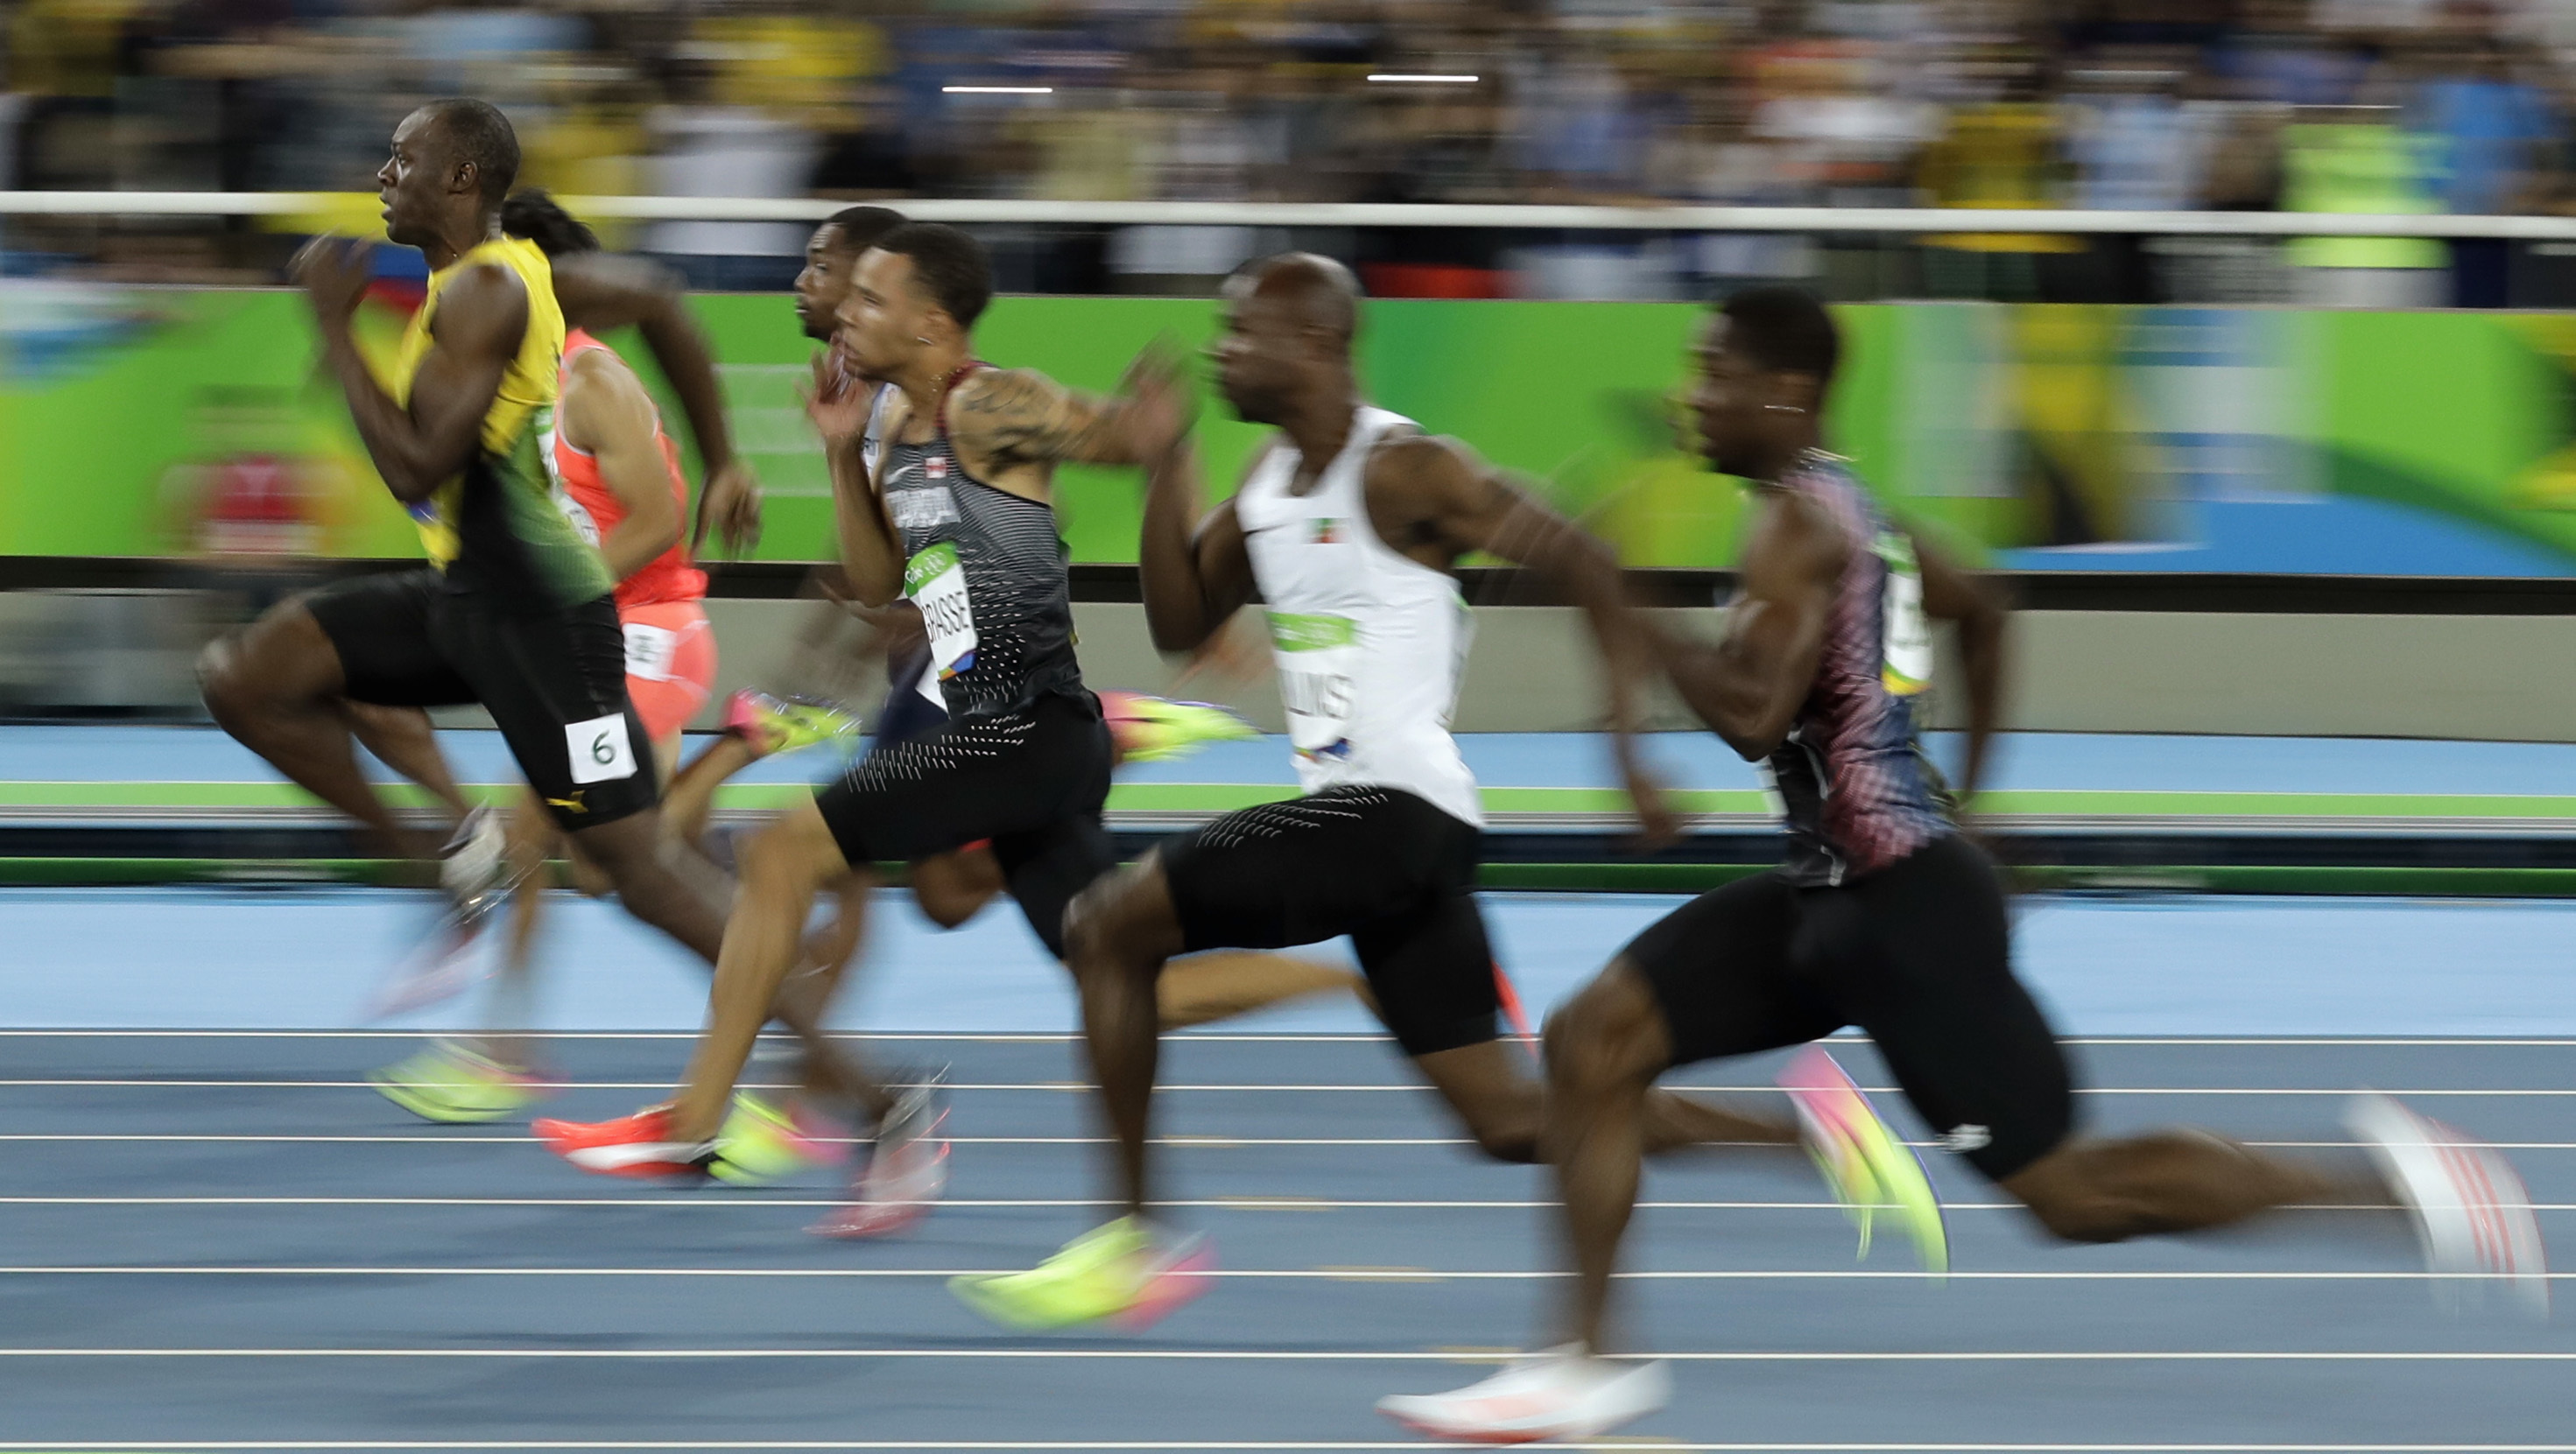 Jamaica's Usain Bolt, left, takes the lead in a men's 100-meter semifinal during the athletics competitions of the 2016 Summer Olympics at the Olympic stadium in Rio de Janeiro, Brazil, Sunday, Aug. 14, 2016. (AP Photo/Matt Dunham)